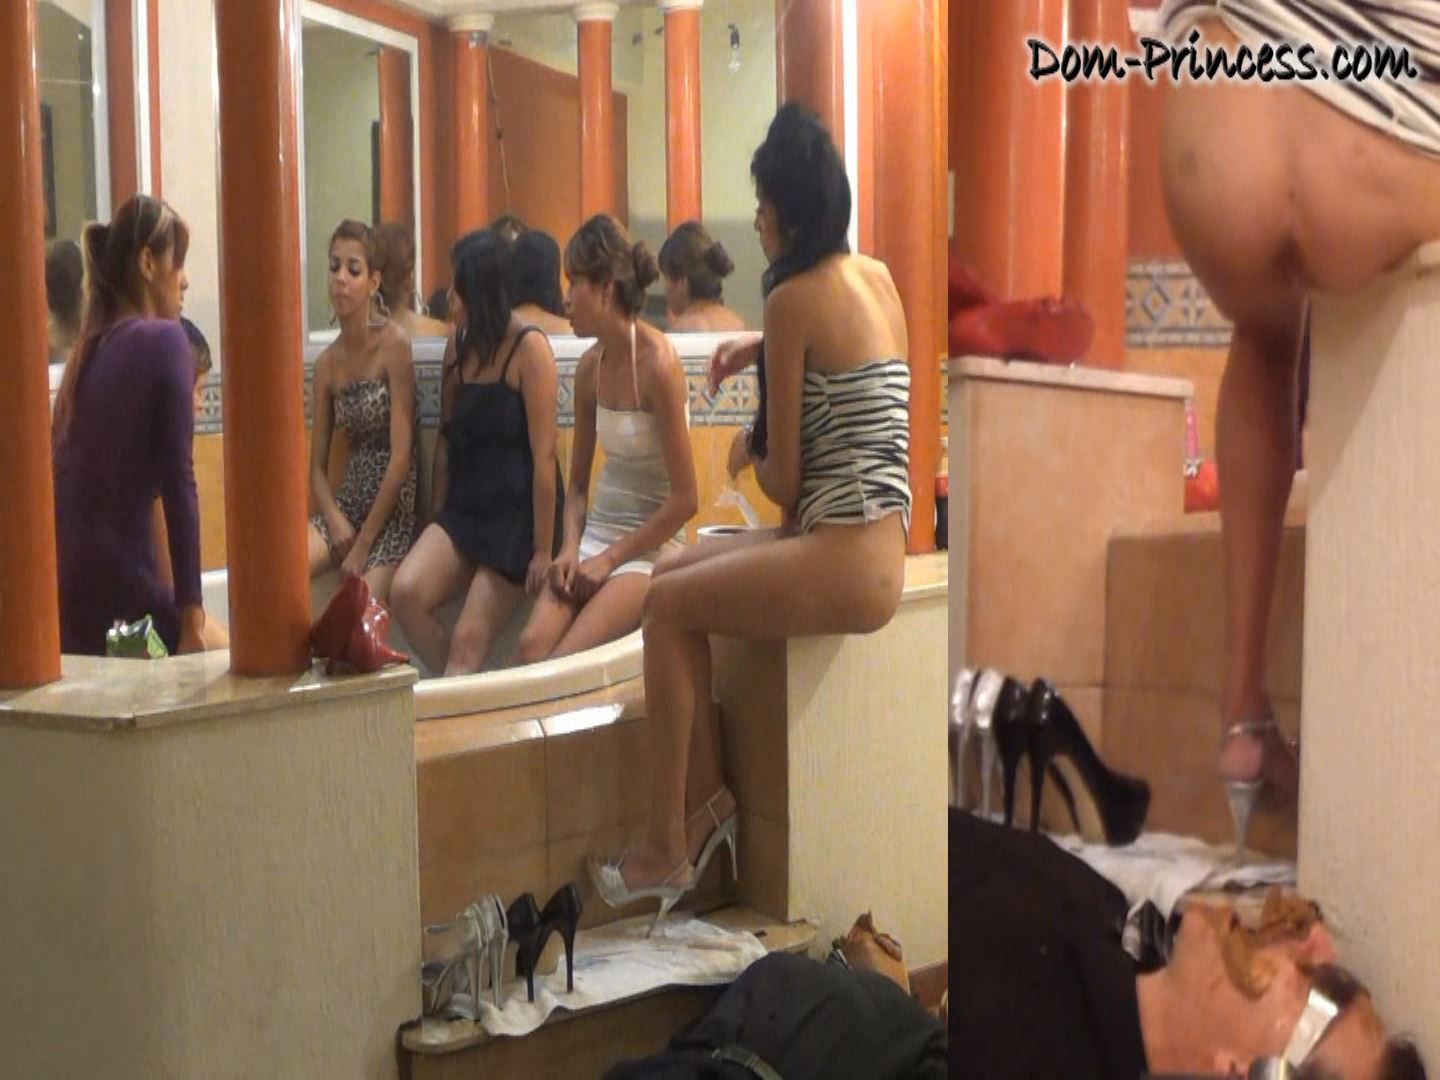 [DOM-PRINCESS] The Jacuzzi Toilet Man Part 4 Samantha [FULL HD][1080p][WMV]